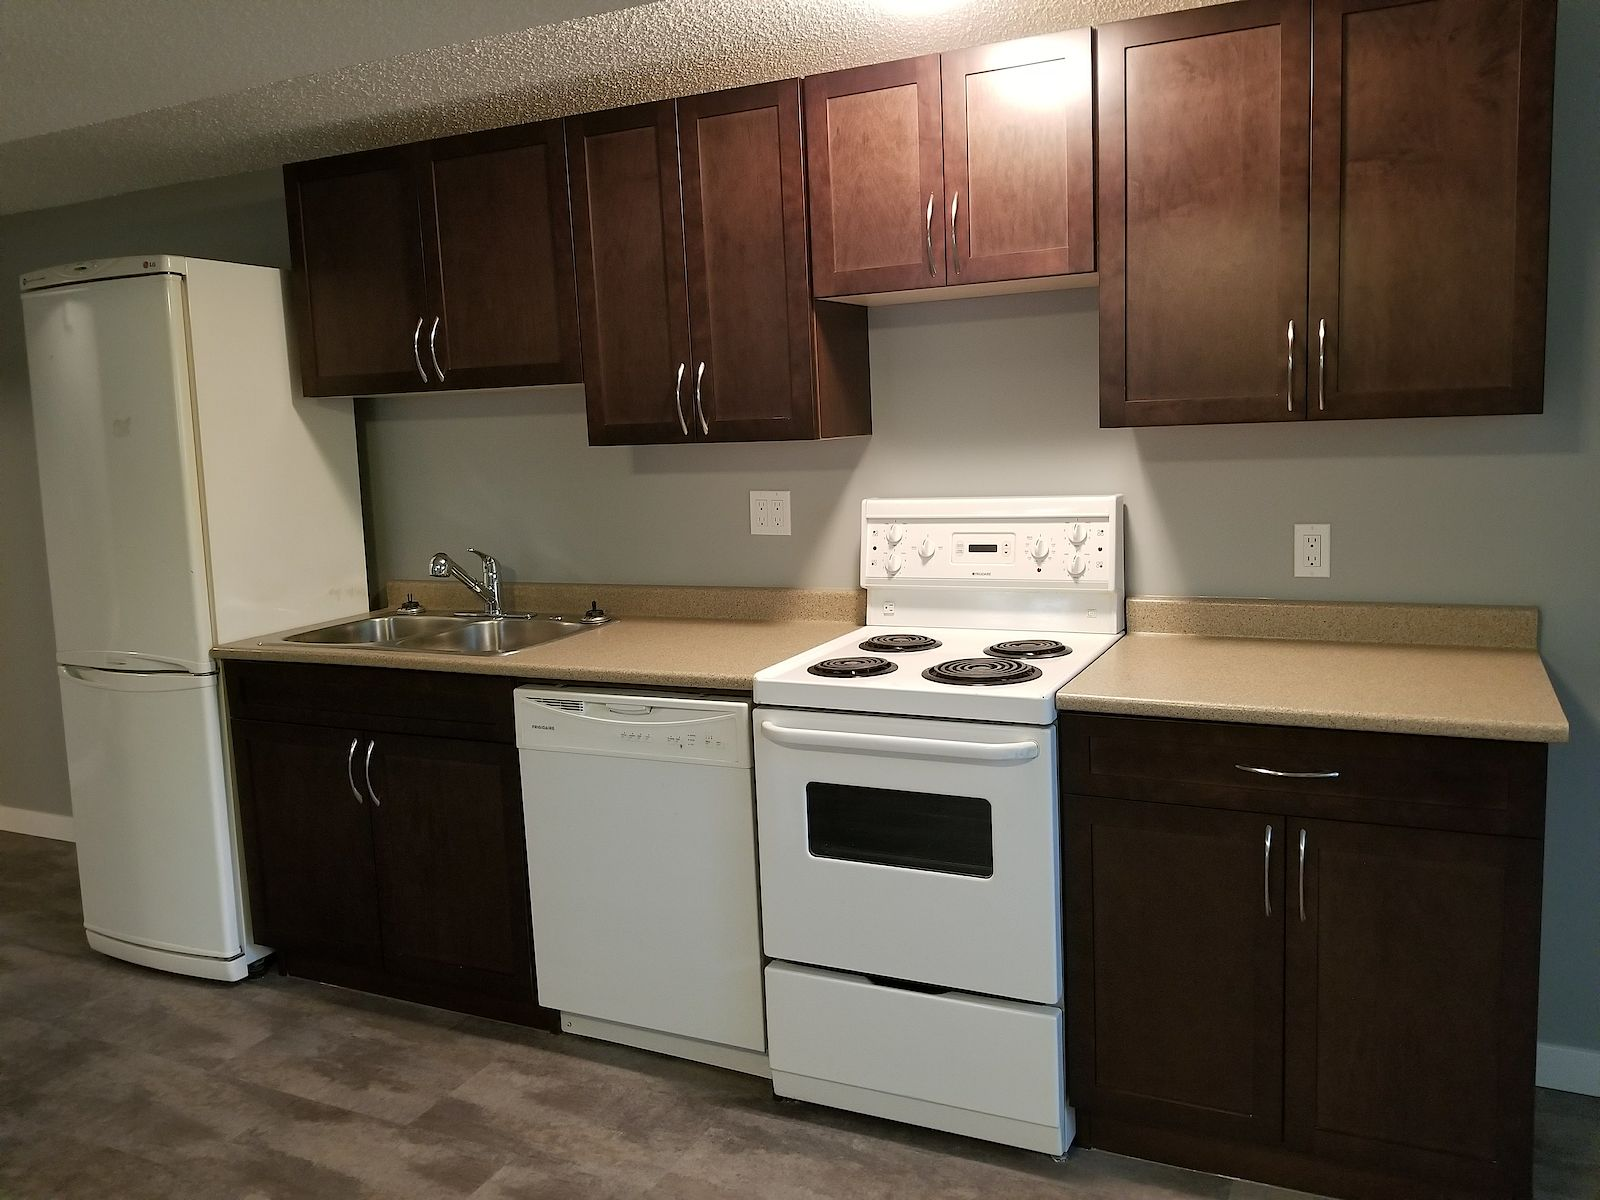 Calgary Basement For Rent - Ogden, - 1 Bedroom Basement